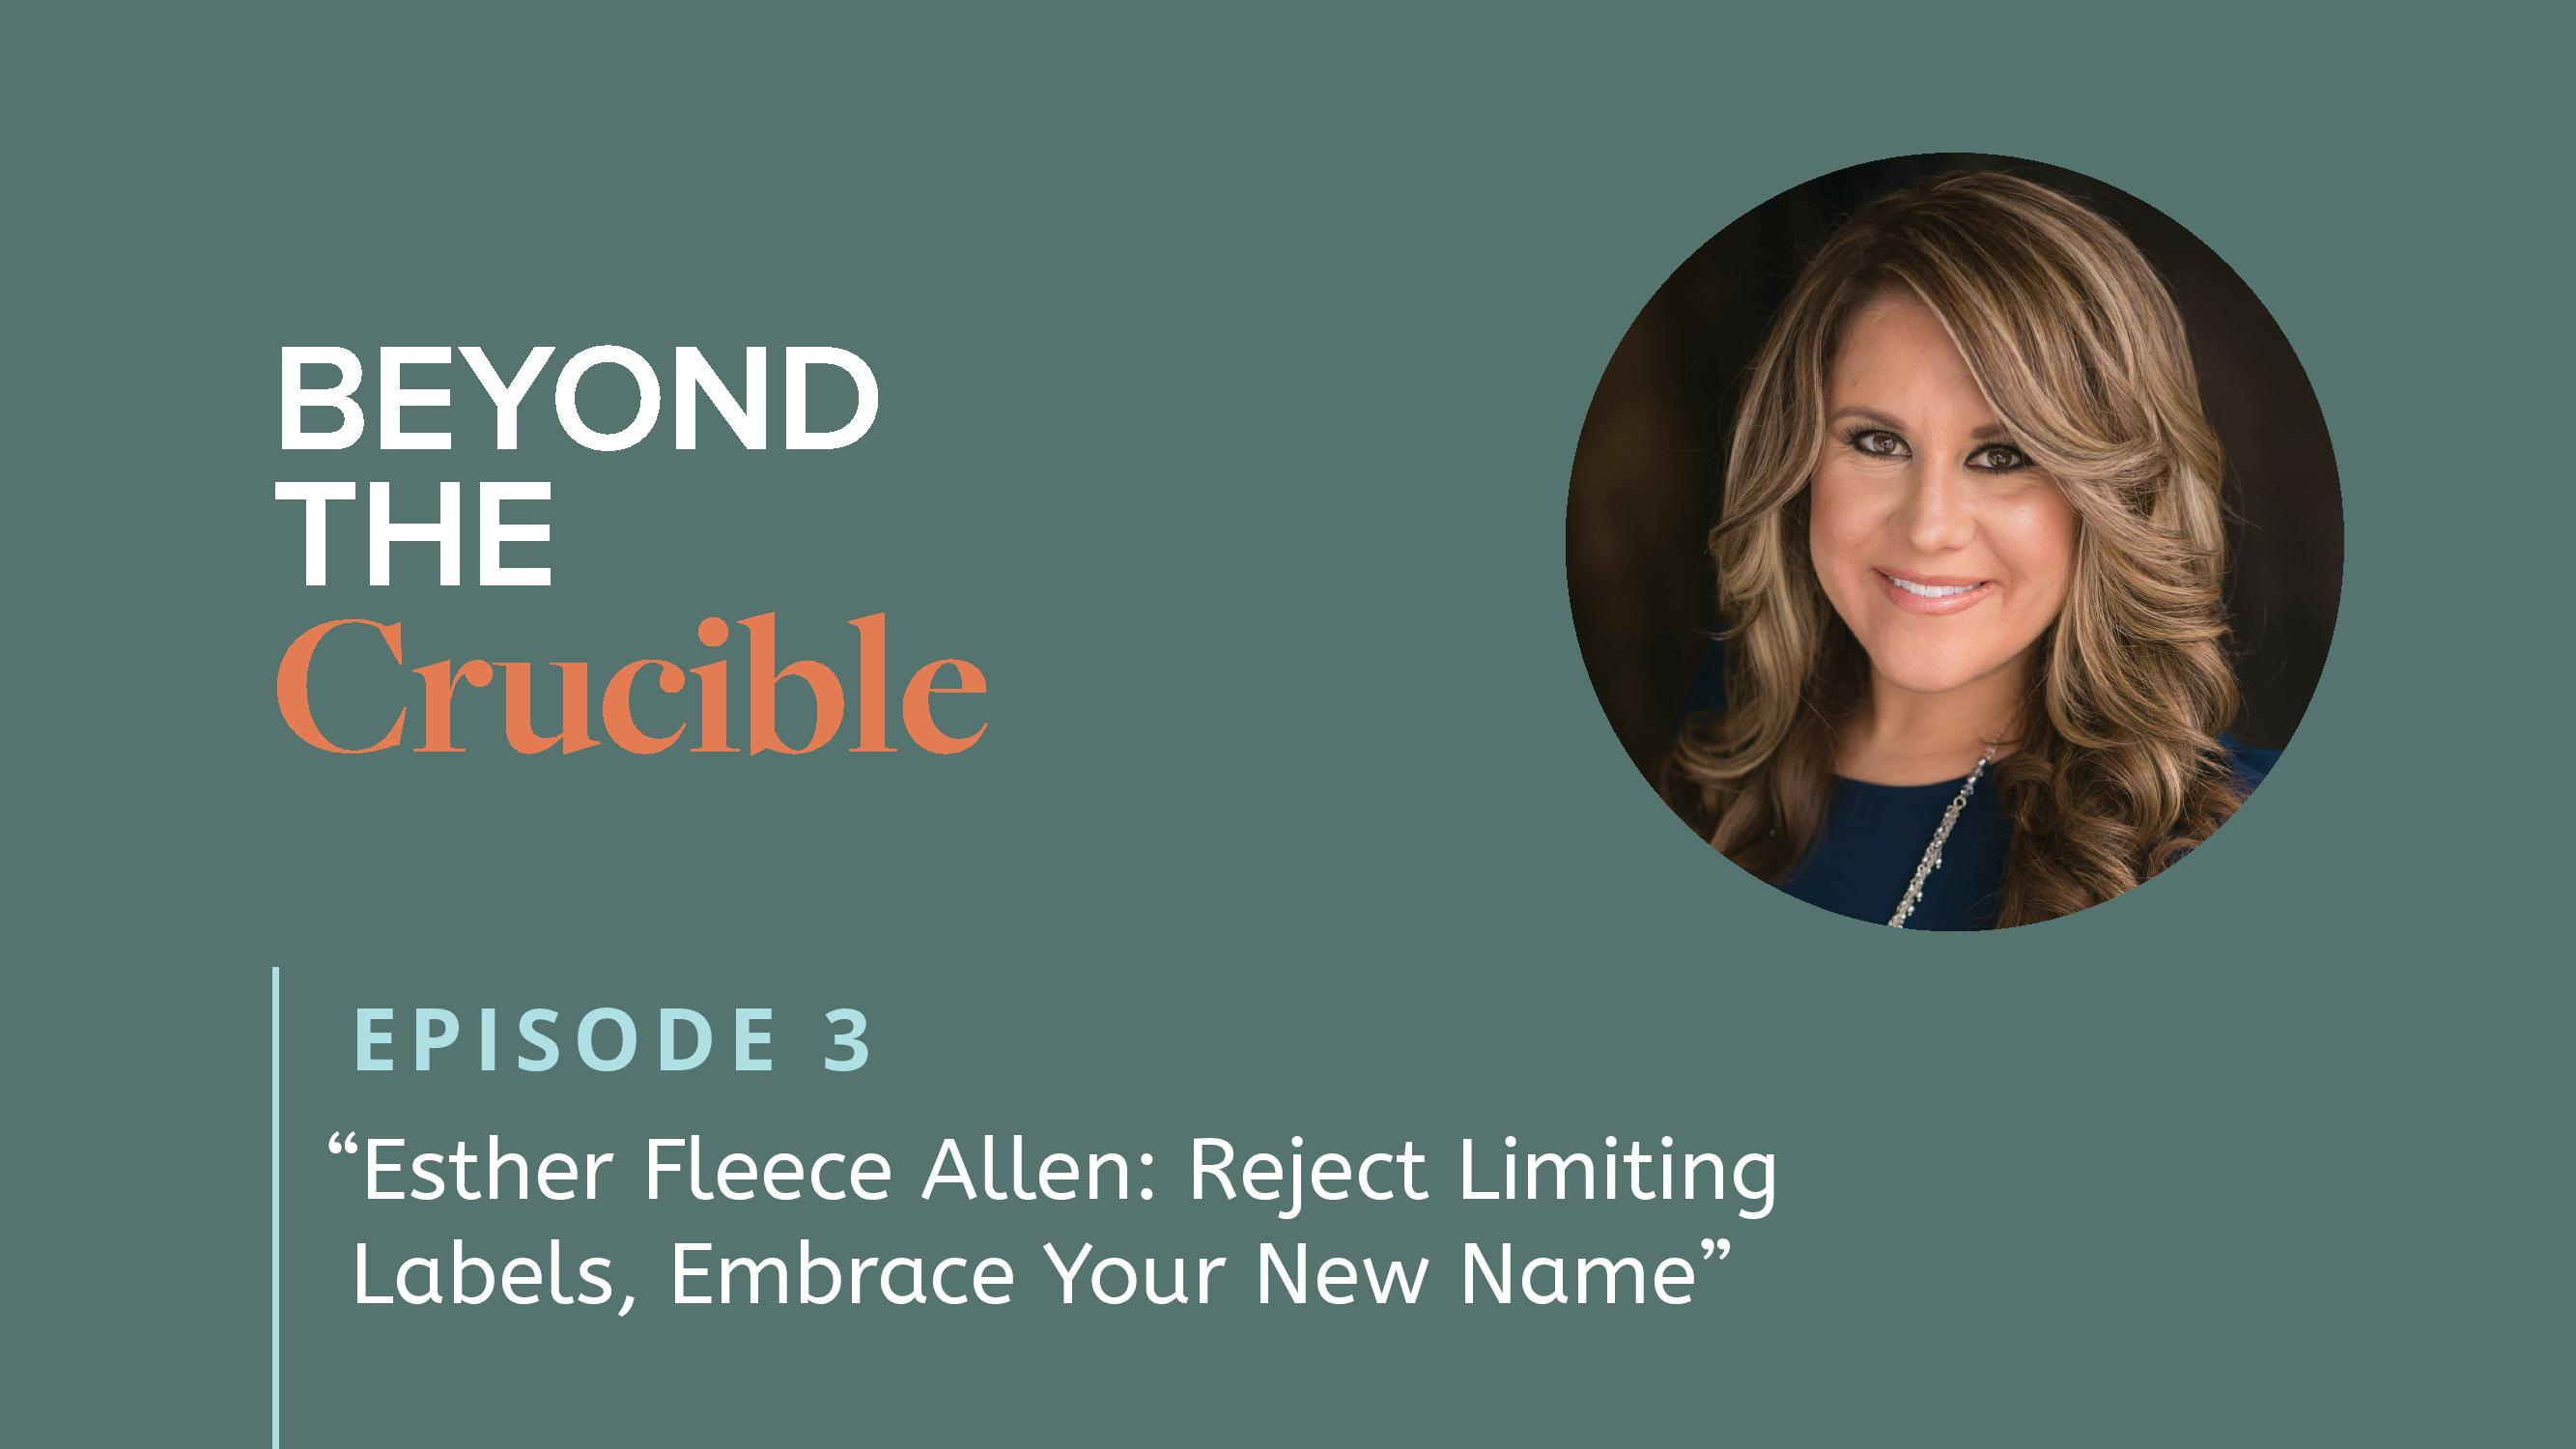 Esther Fleece Allen: Rejecting Limiting Labels, Embrace Your New Name